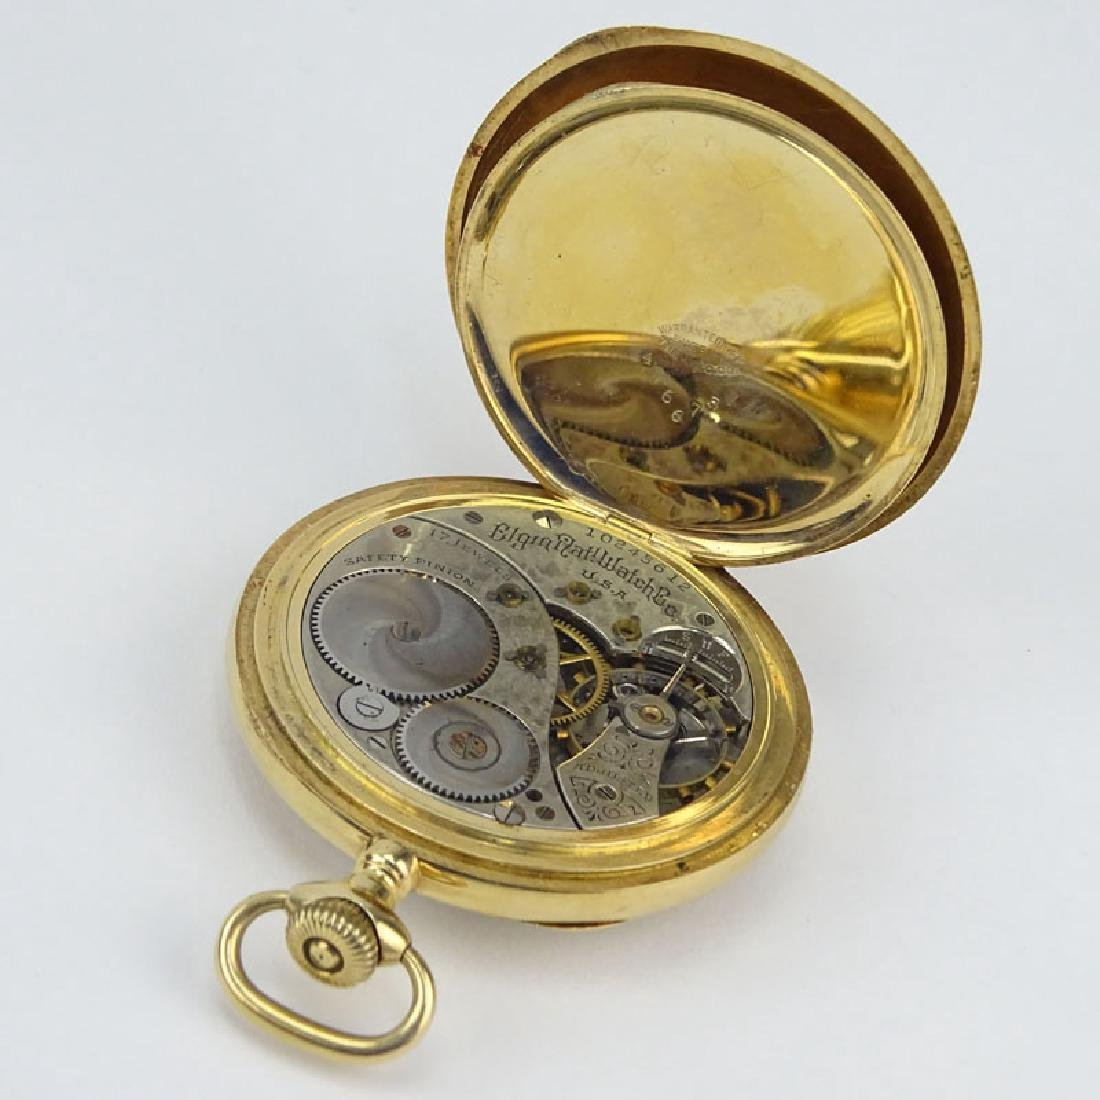 Antique Elgin 14 Karat Yellow Gold Pocket Watch. - 5